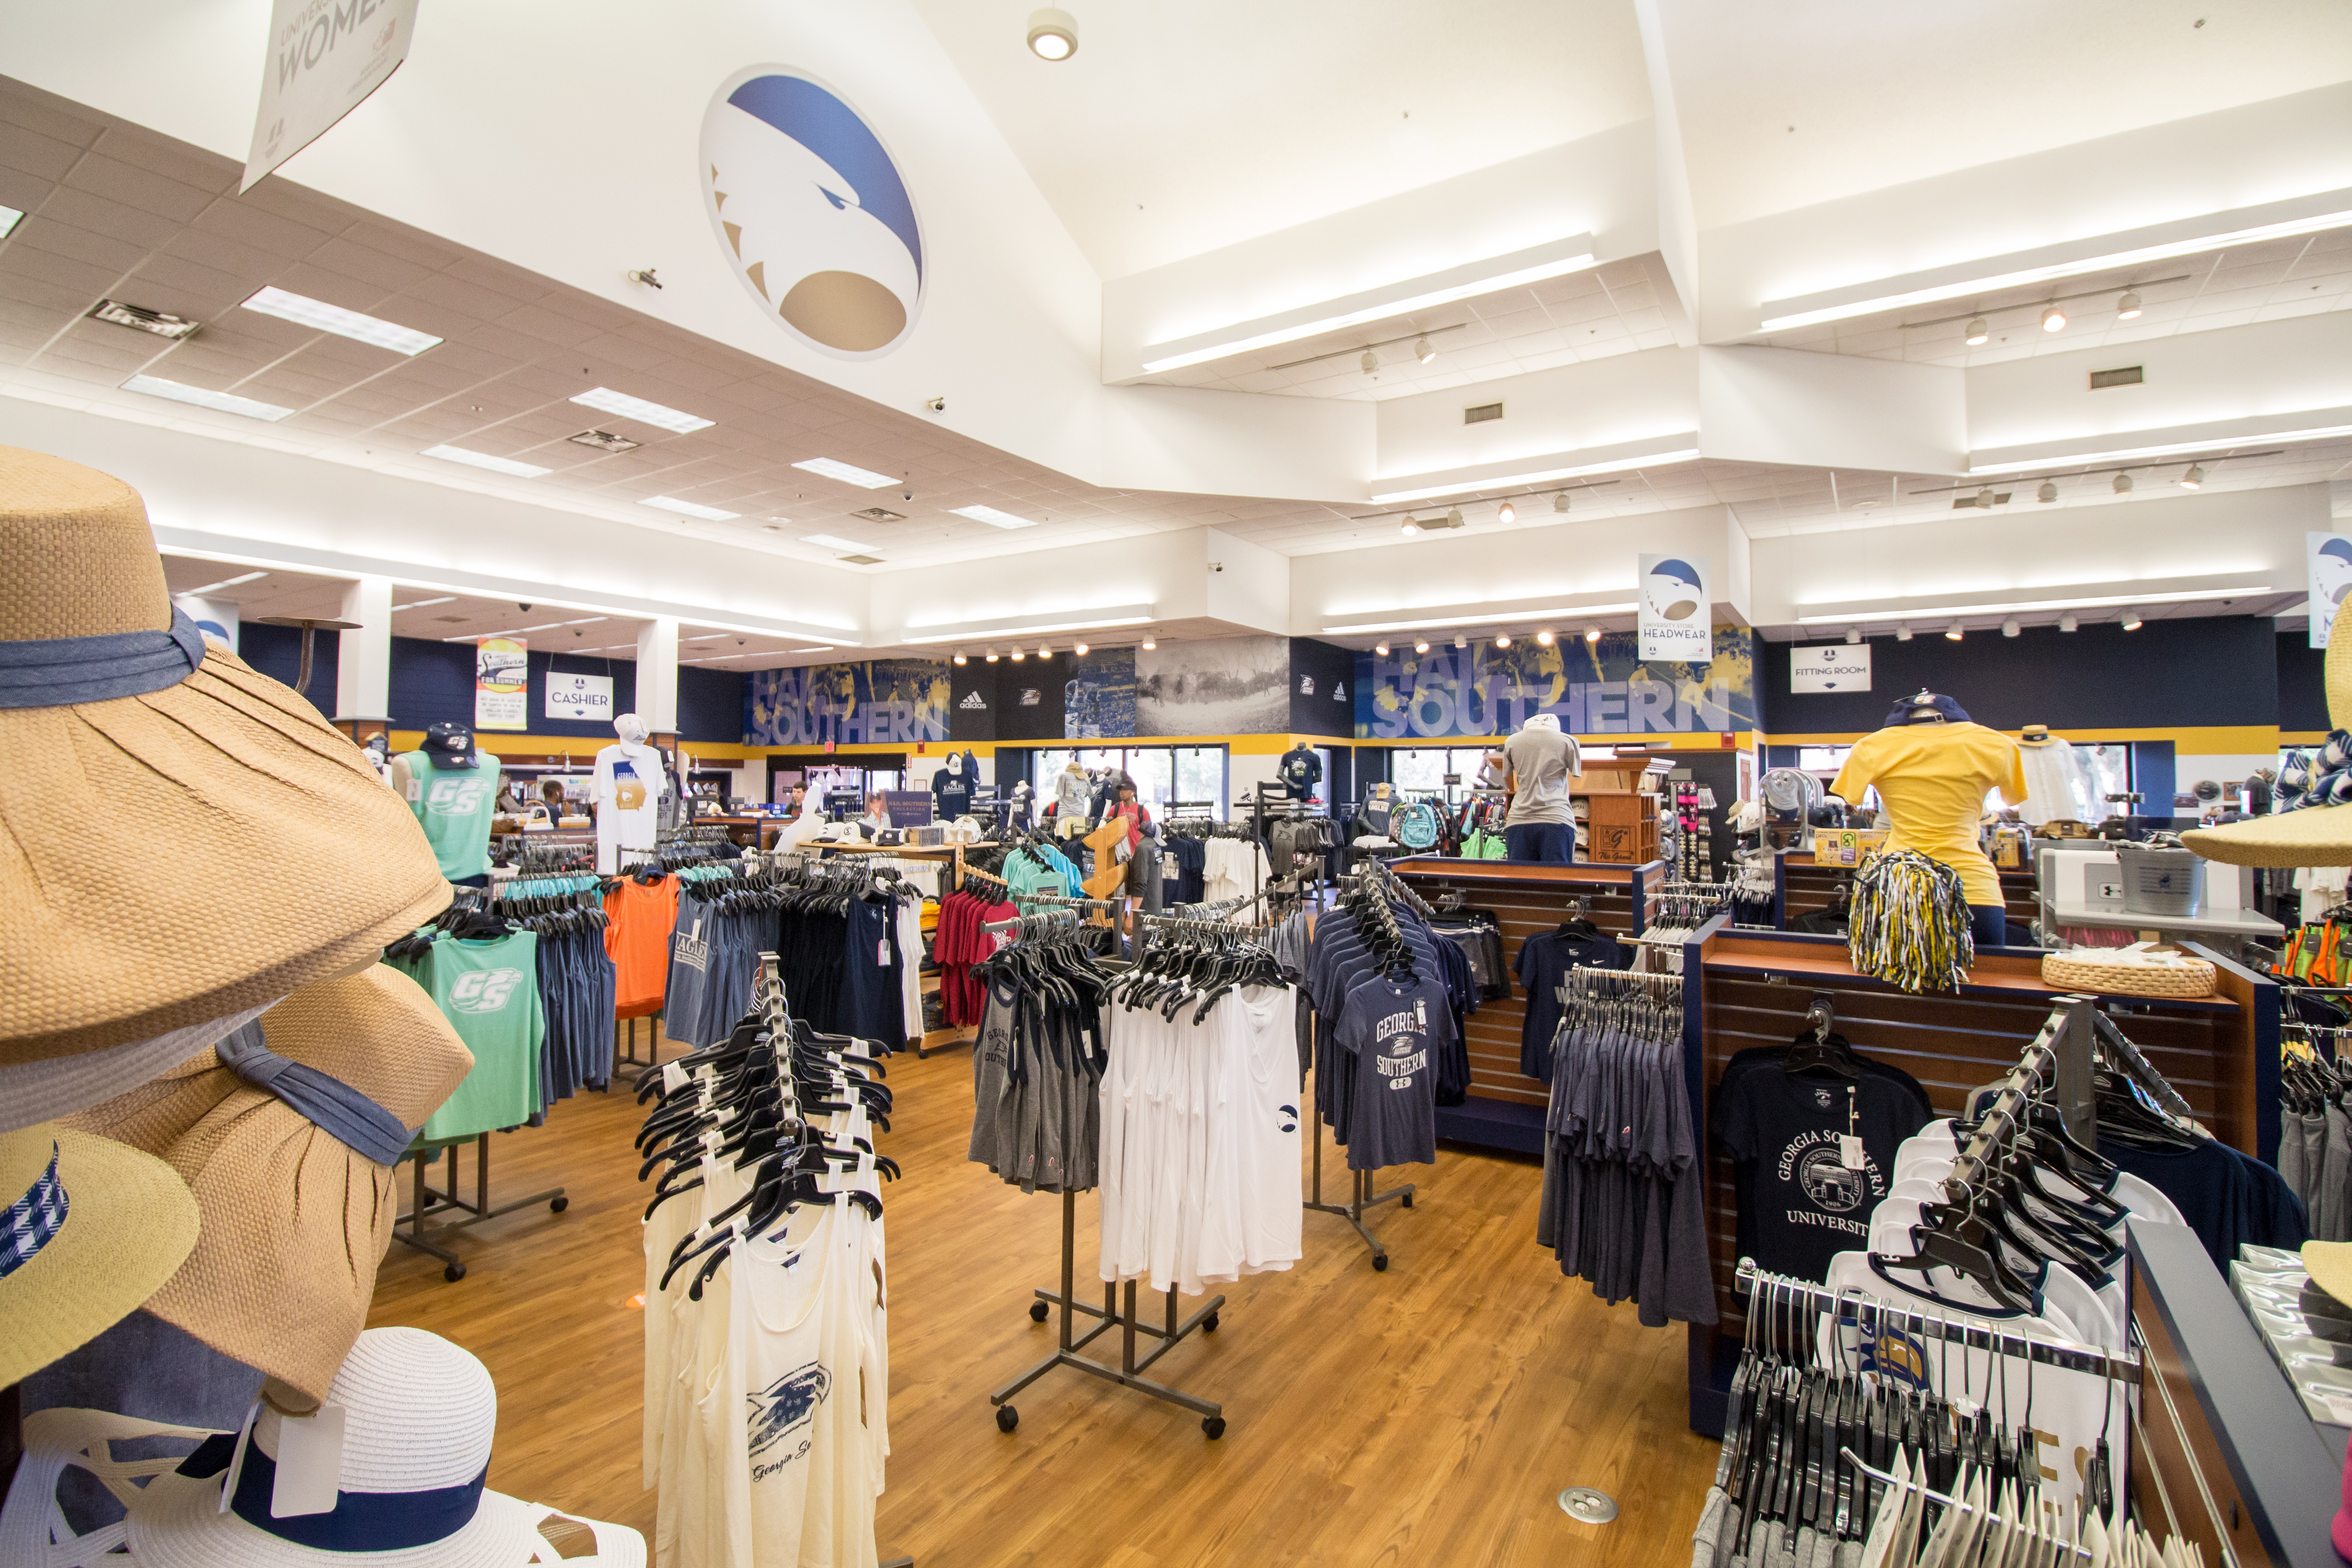 Nearly one-quarter of Georgia Southern University's student population had signed up for its store's U Count Rewards Program in its first three months. Students get $2 for every $100 spent in the store.